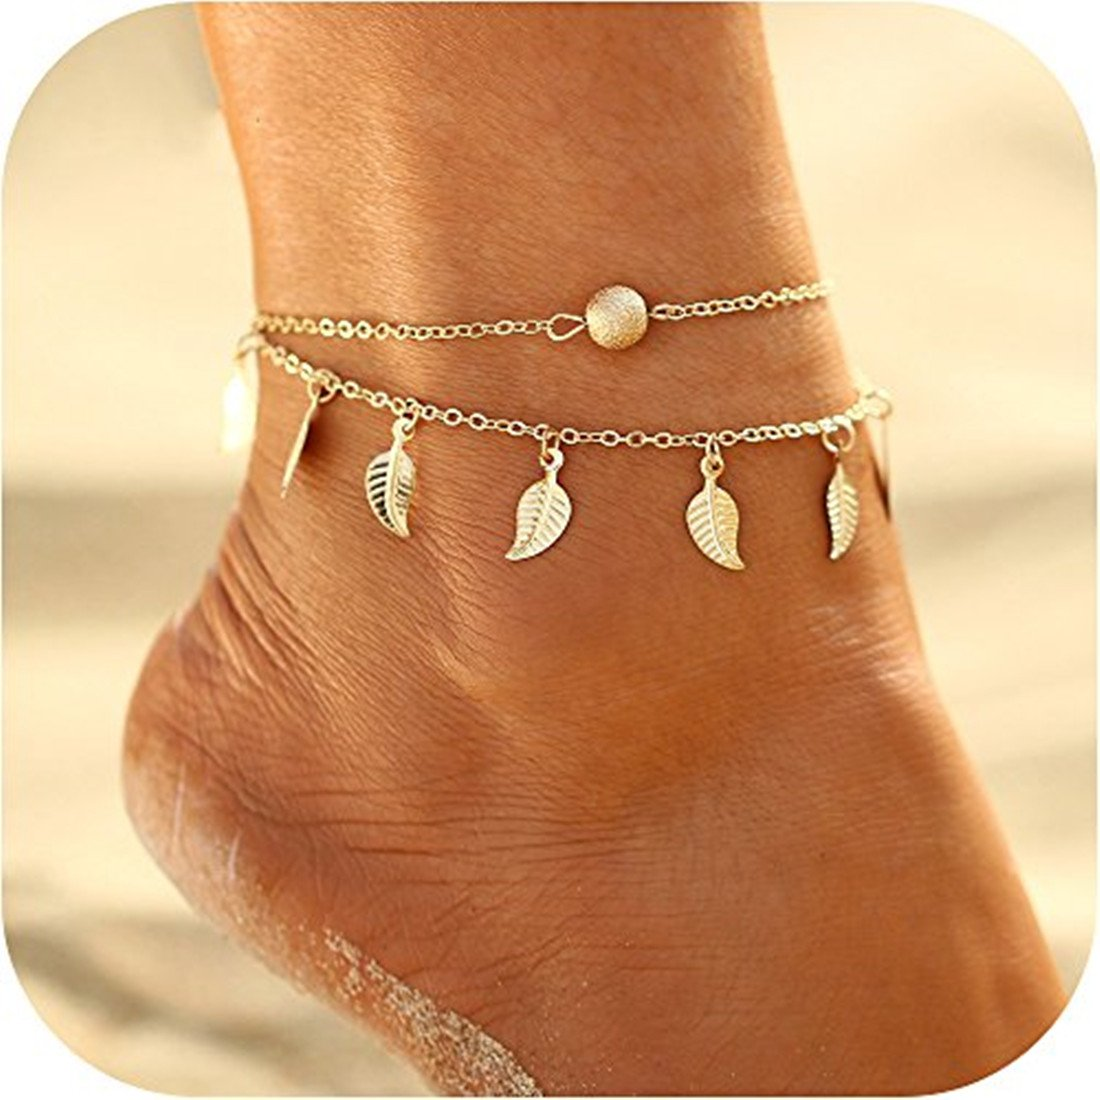 Anklet Ankle Foot Bracelet Chain Jewelry, Gold Sea Beach Handmade Exquisite Ankle Foot Bracelet Chain Jewelry Gifts for Women Girls SwanElegant